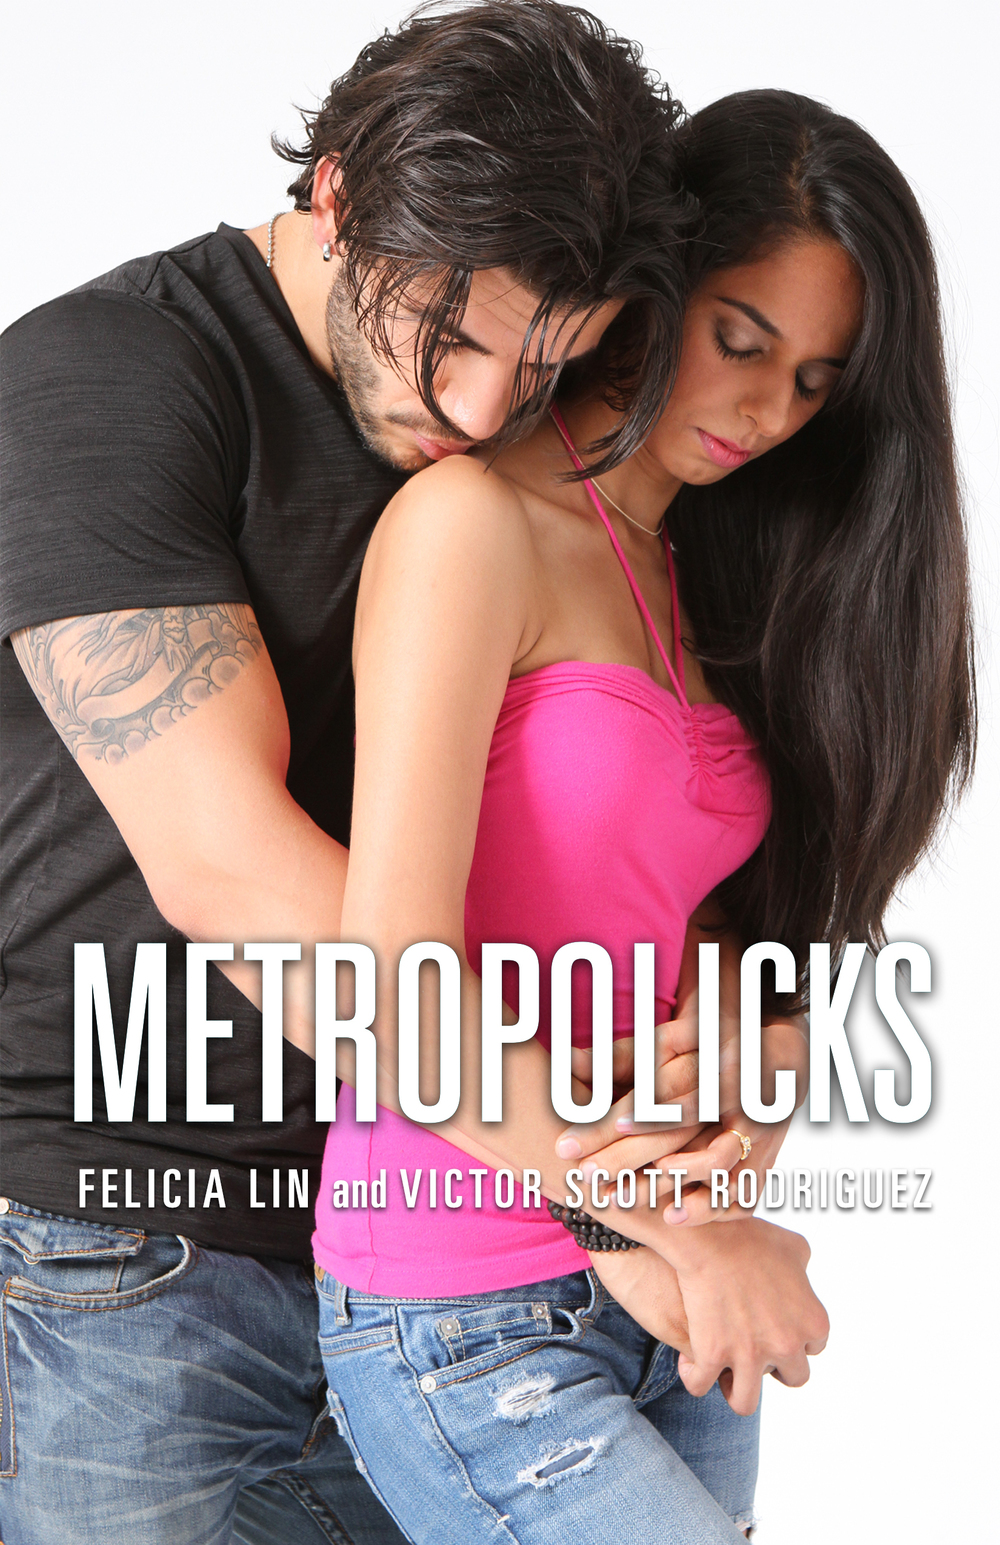 Metropolicks SD print cover.jpg